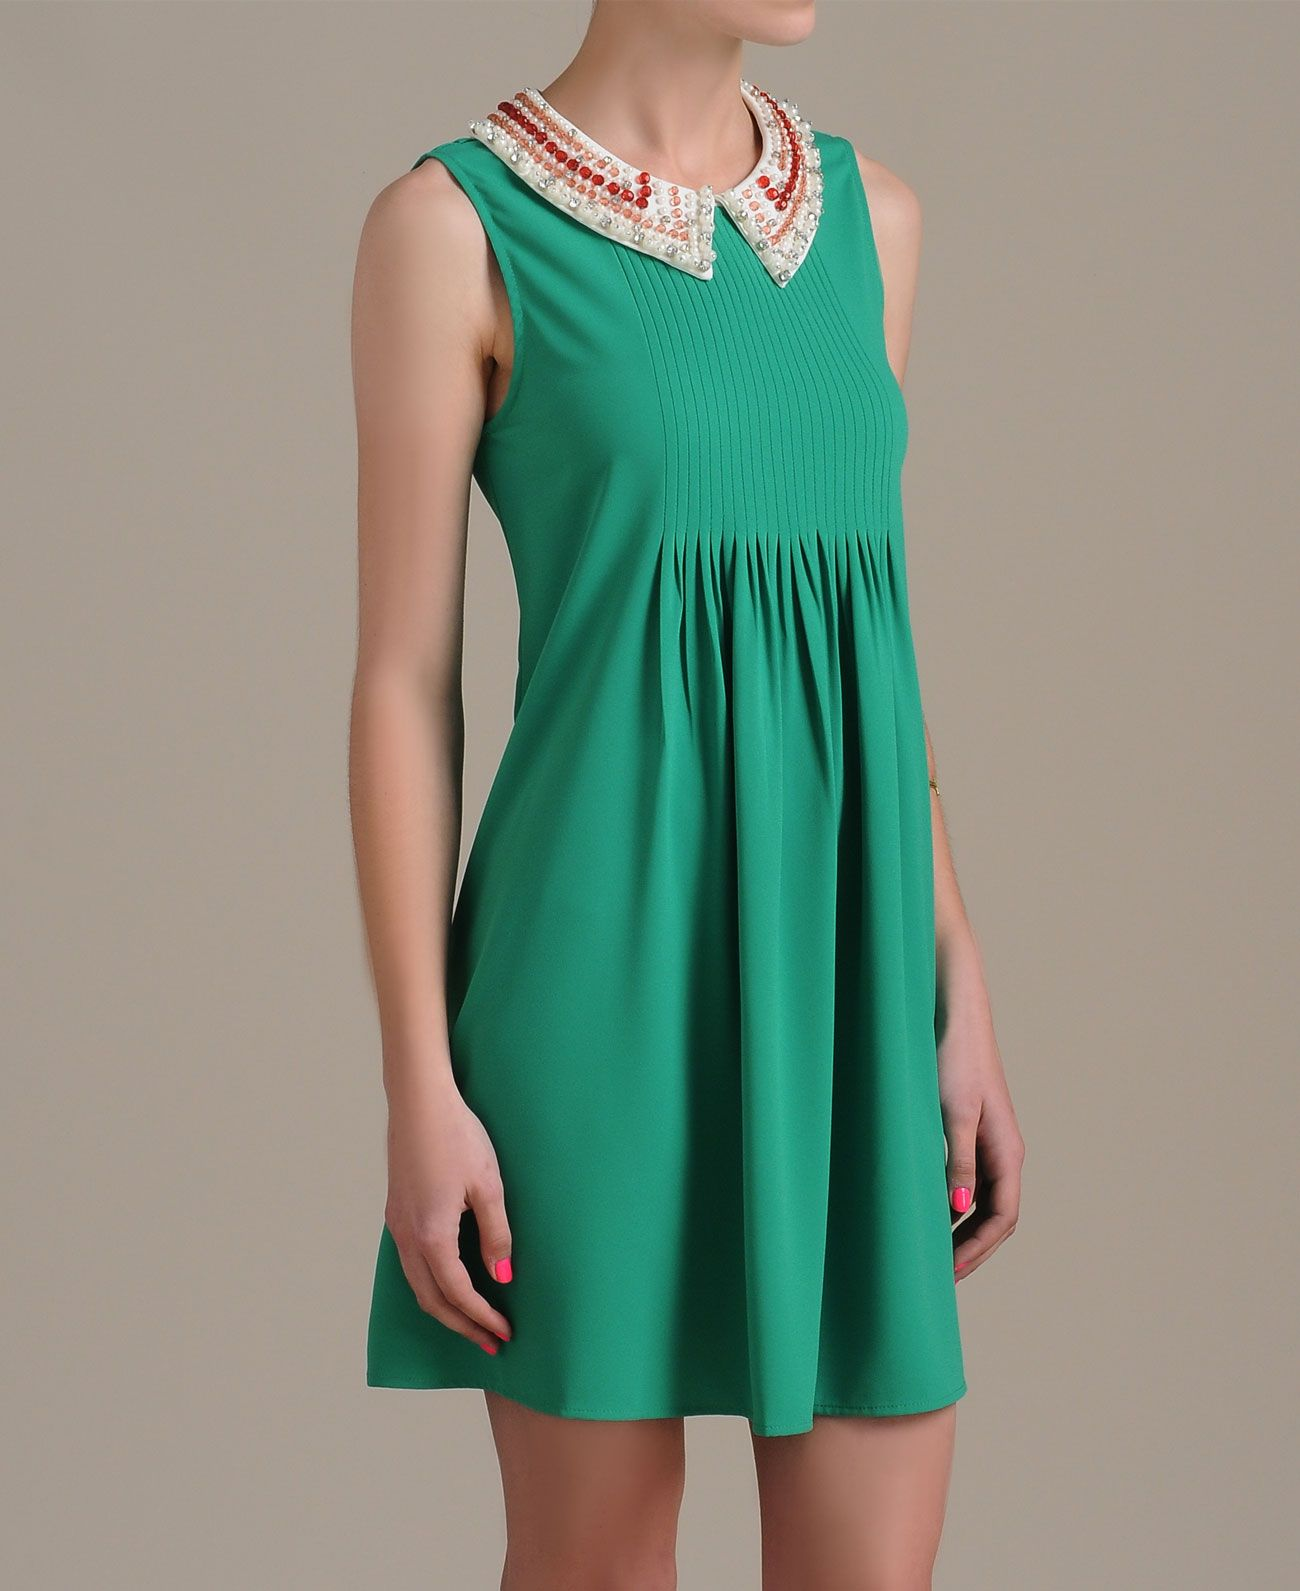 Gracia Beaded Collar Dress